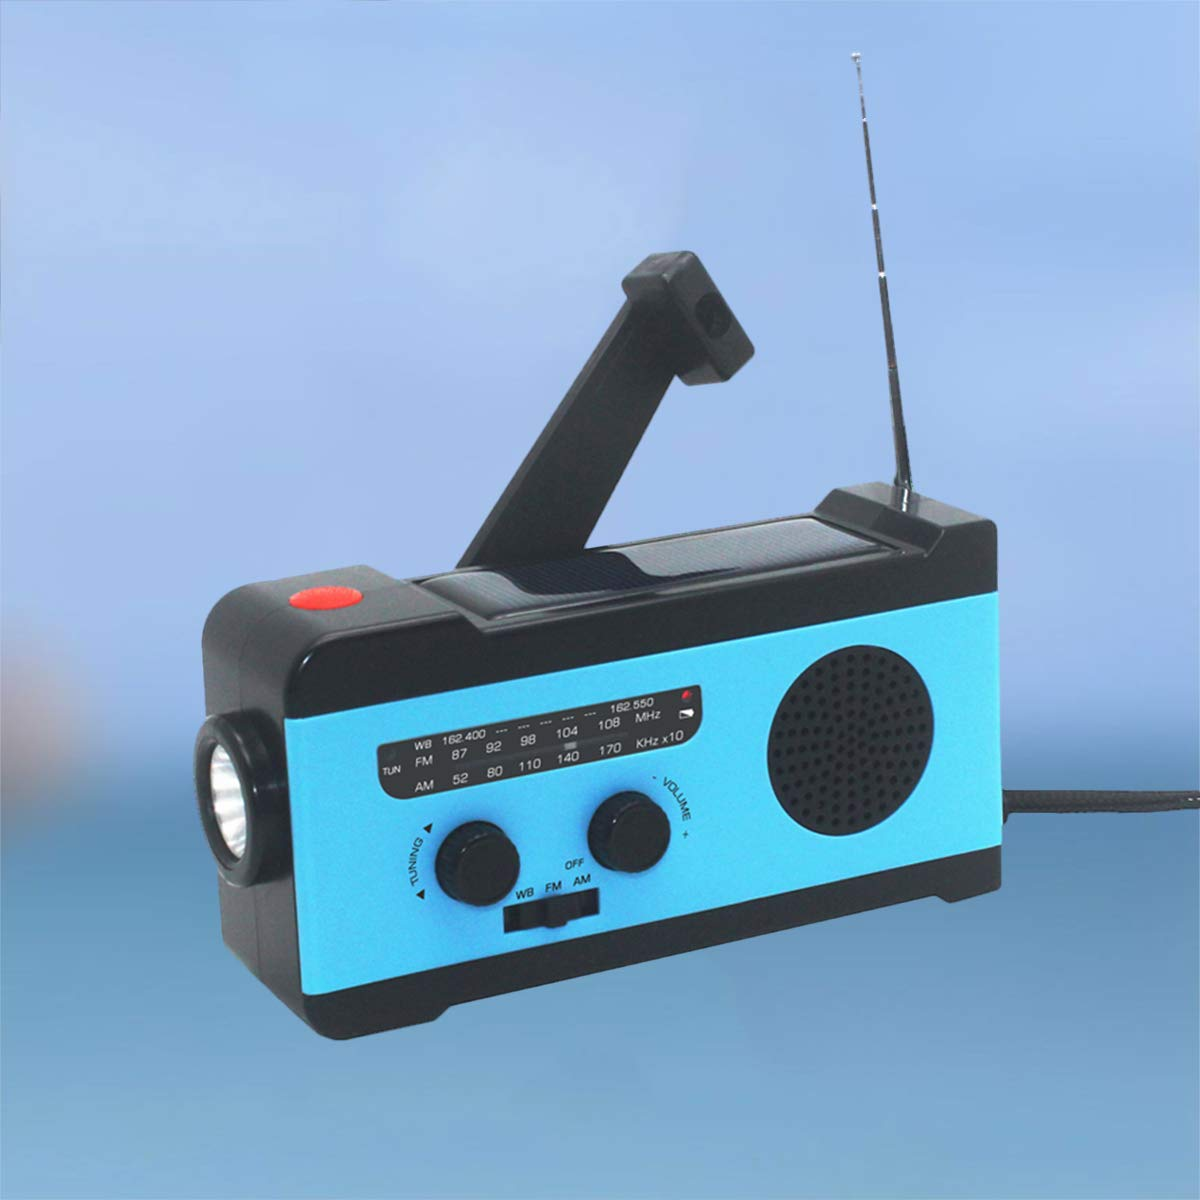 VOSAREA Portable Radio FM Receiver Emergency Radio with Alarm Clock FM Radio FM Receiver by VOSAREA (Image #5)